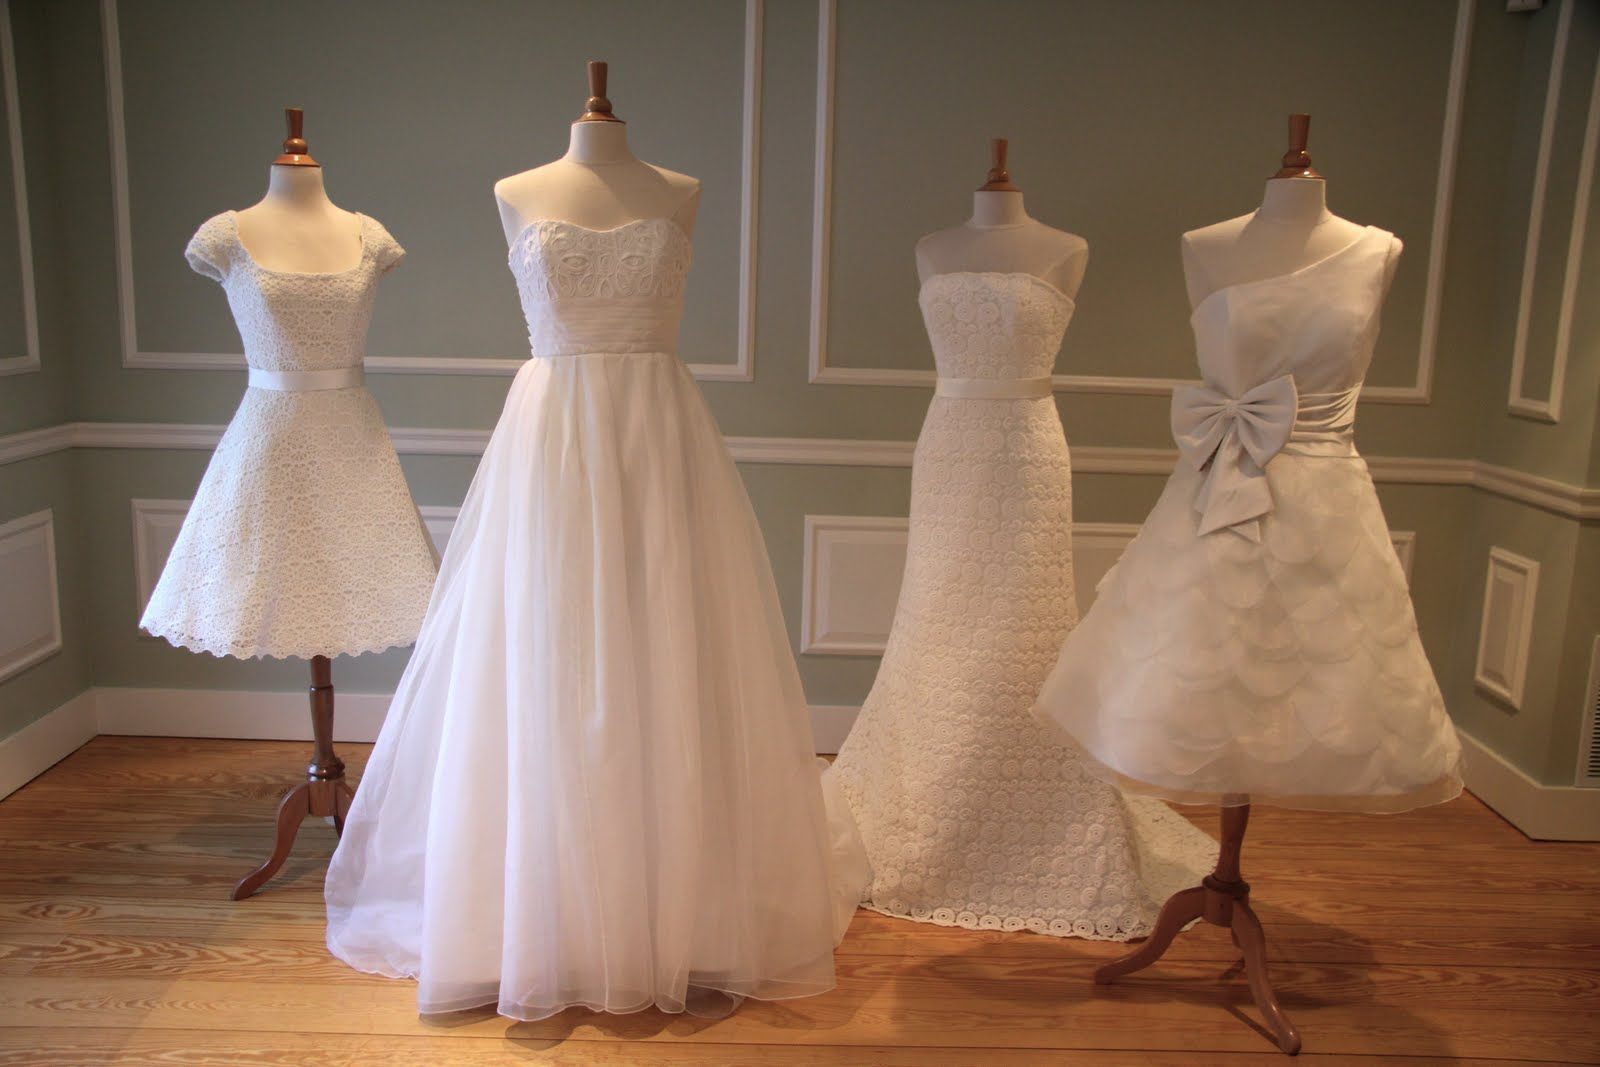 Wedding Gown Lilly Pulitzer Dress The 2nd From Left To Right